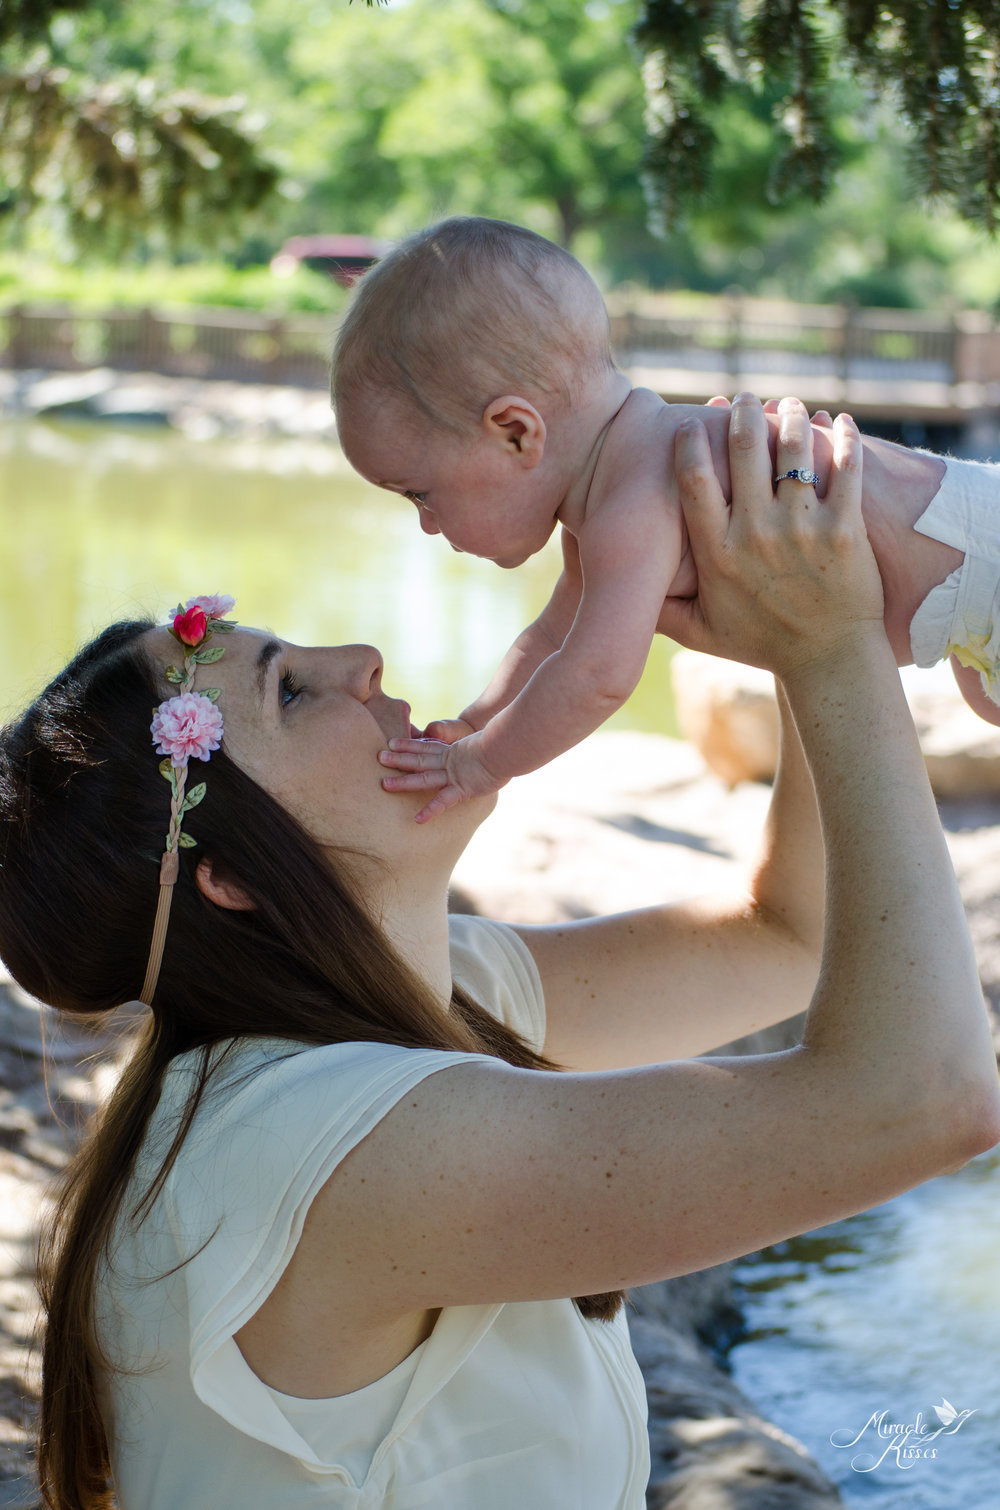 Playtime with mom, outdoor breastfeeding photo